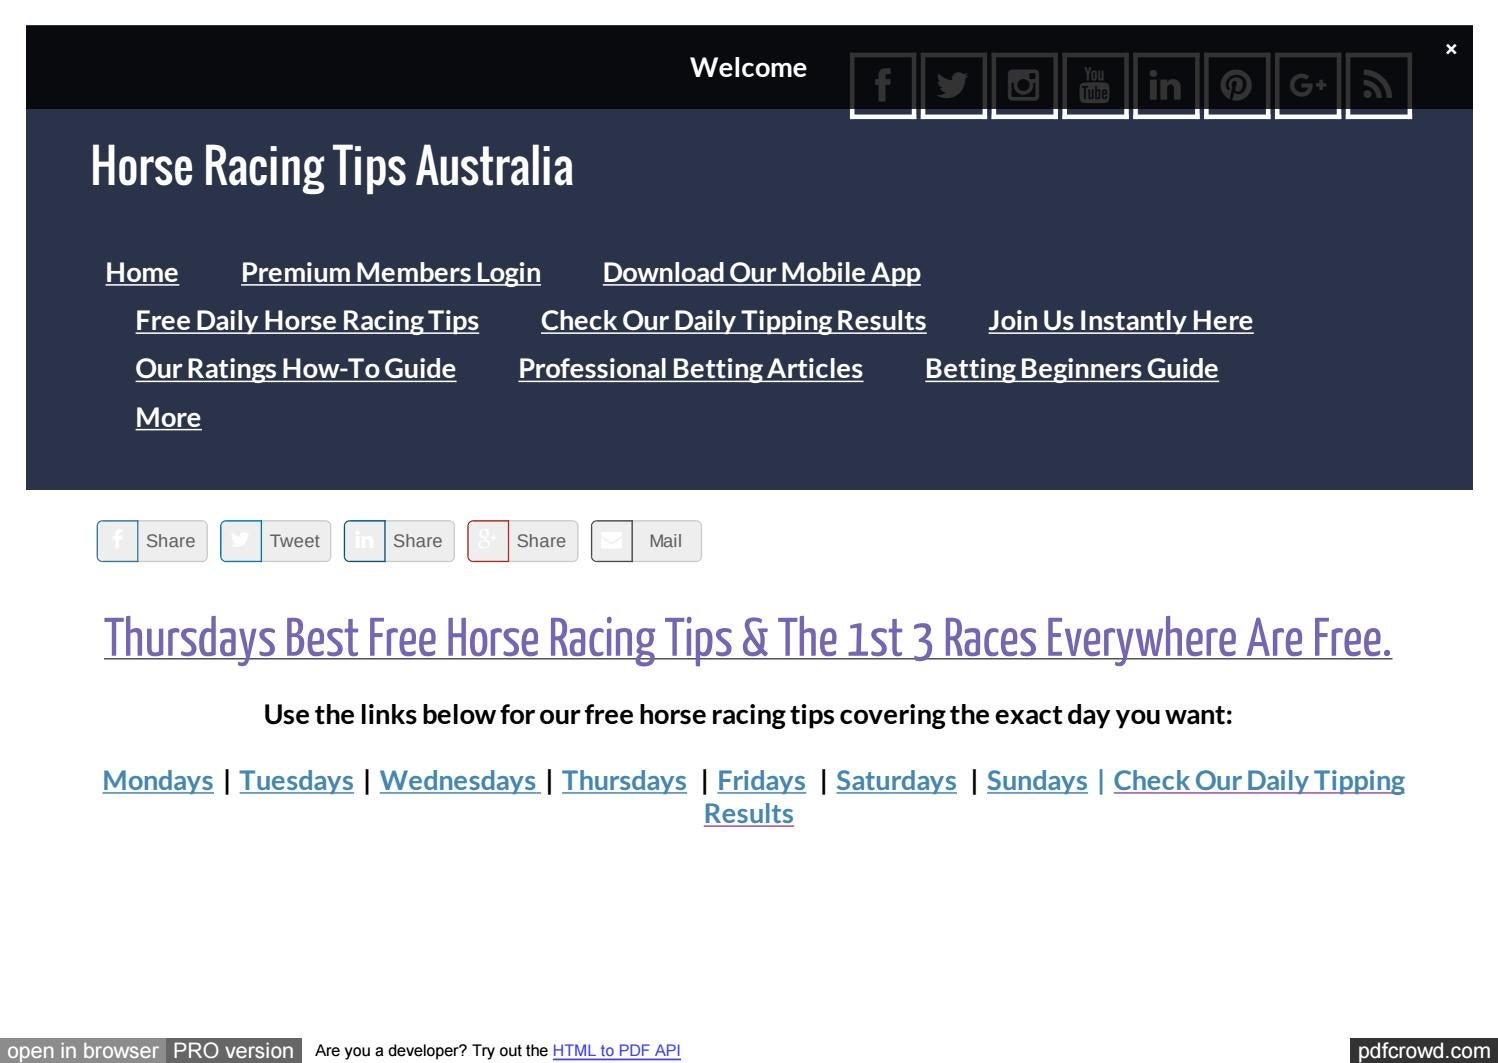 Thursdays August 31st Free Horse Racing Tips by Michael